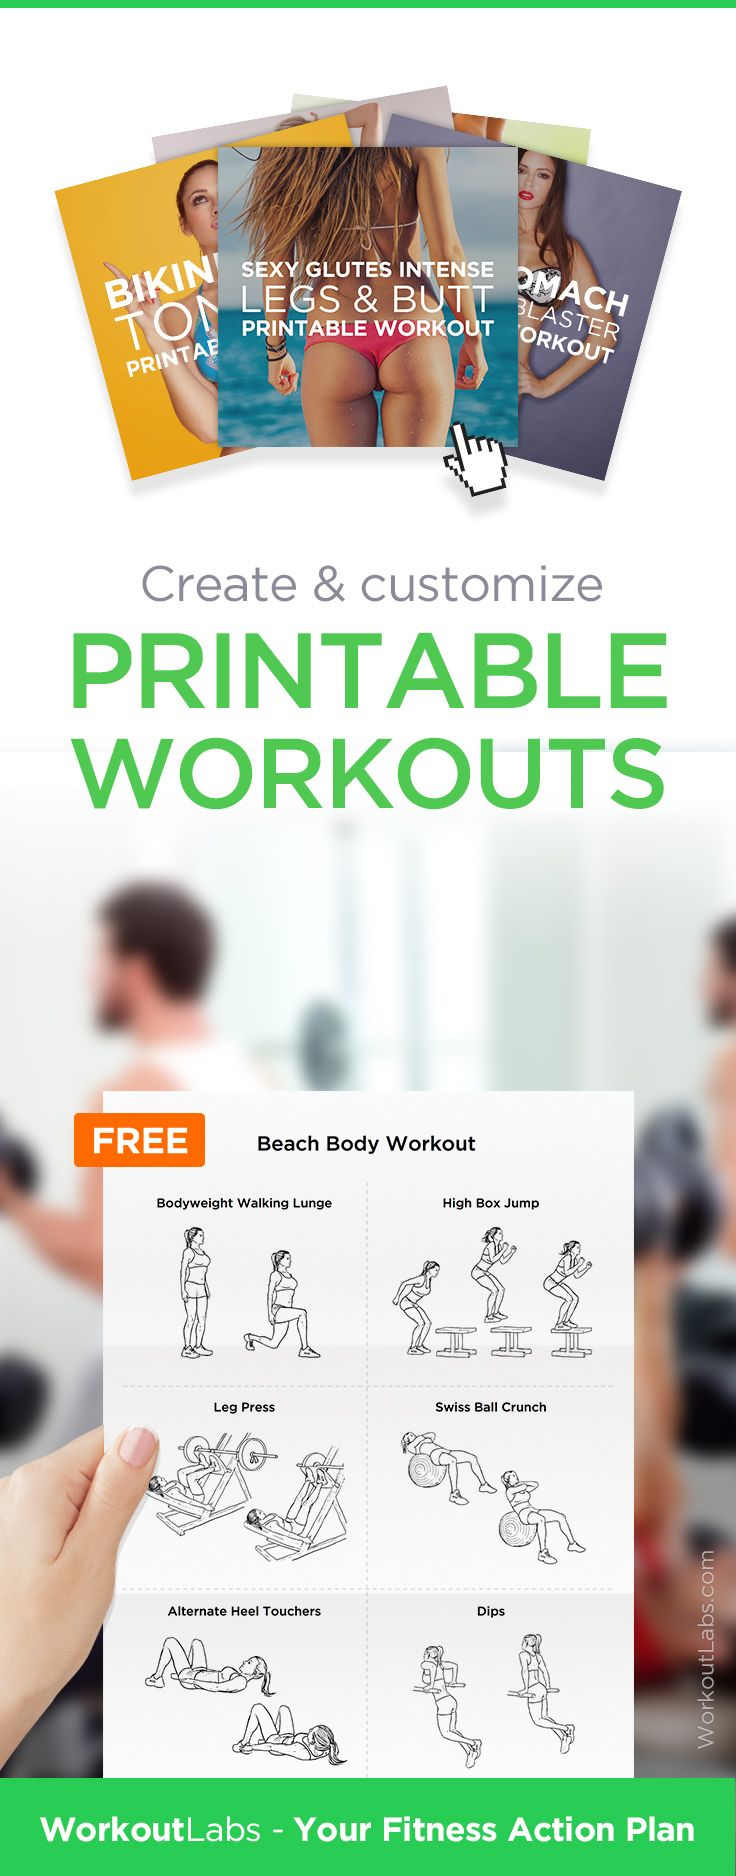 Create + customize printable workout plans